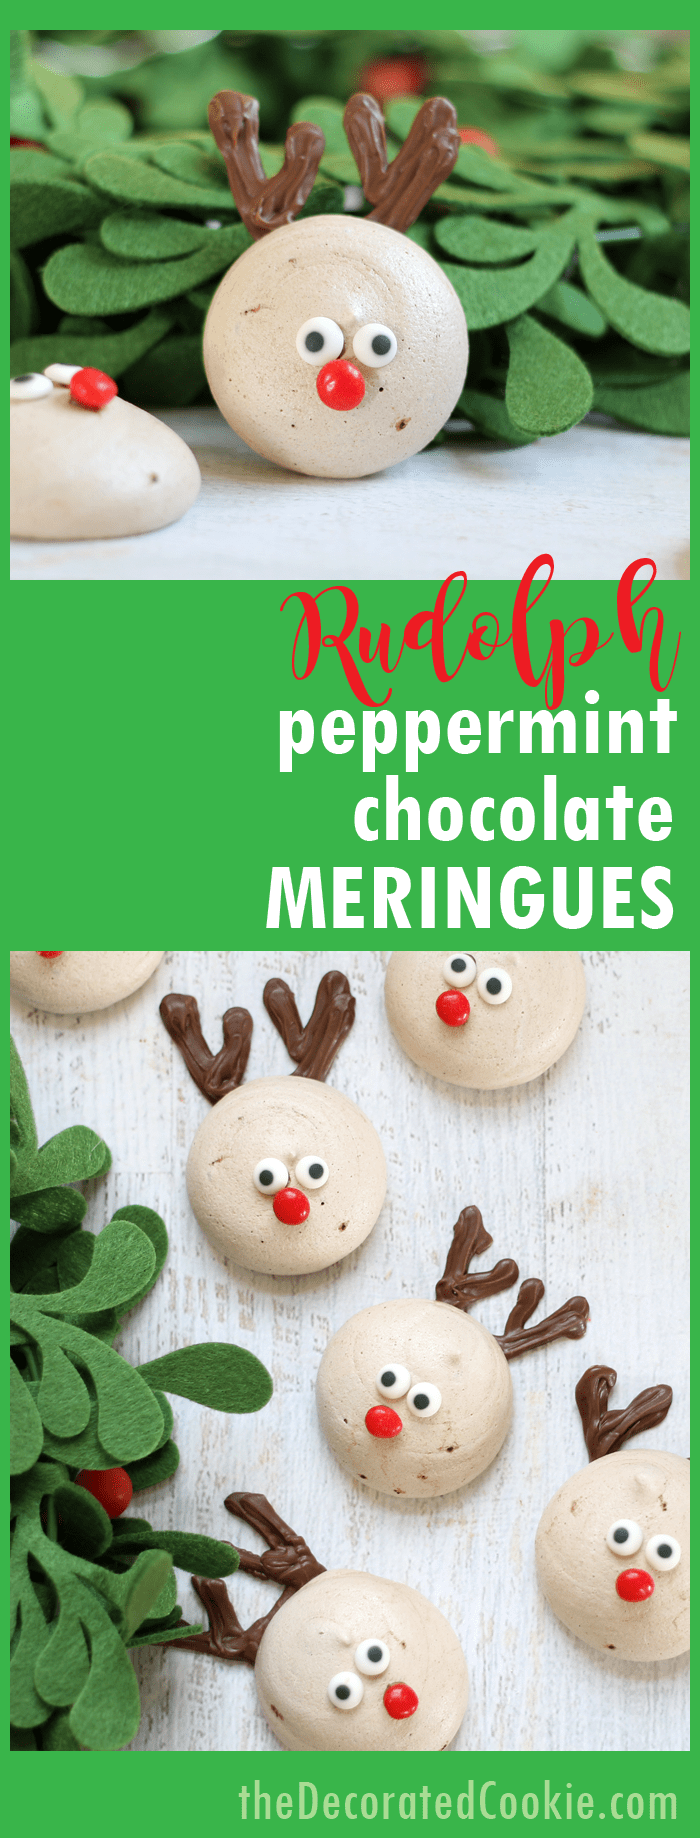 Rudolph cookies: Reindeer peppermint chocolate meringues, fun and easy Christmas cookies.